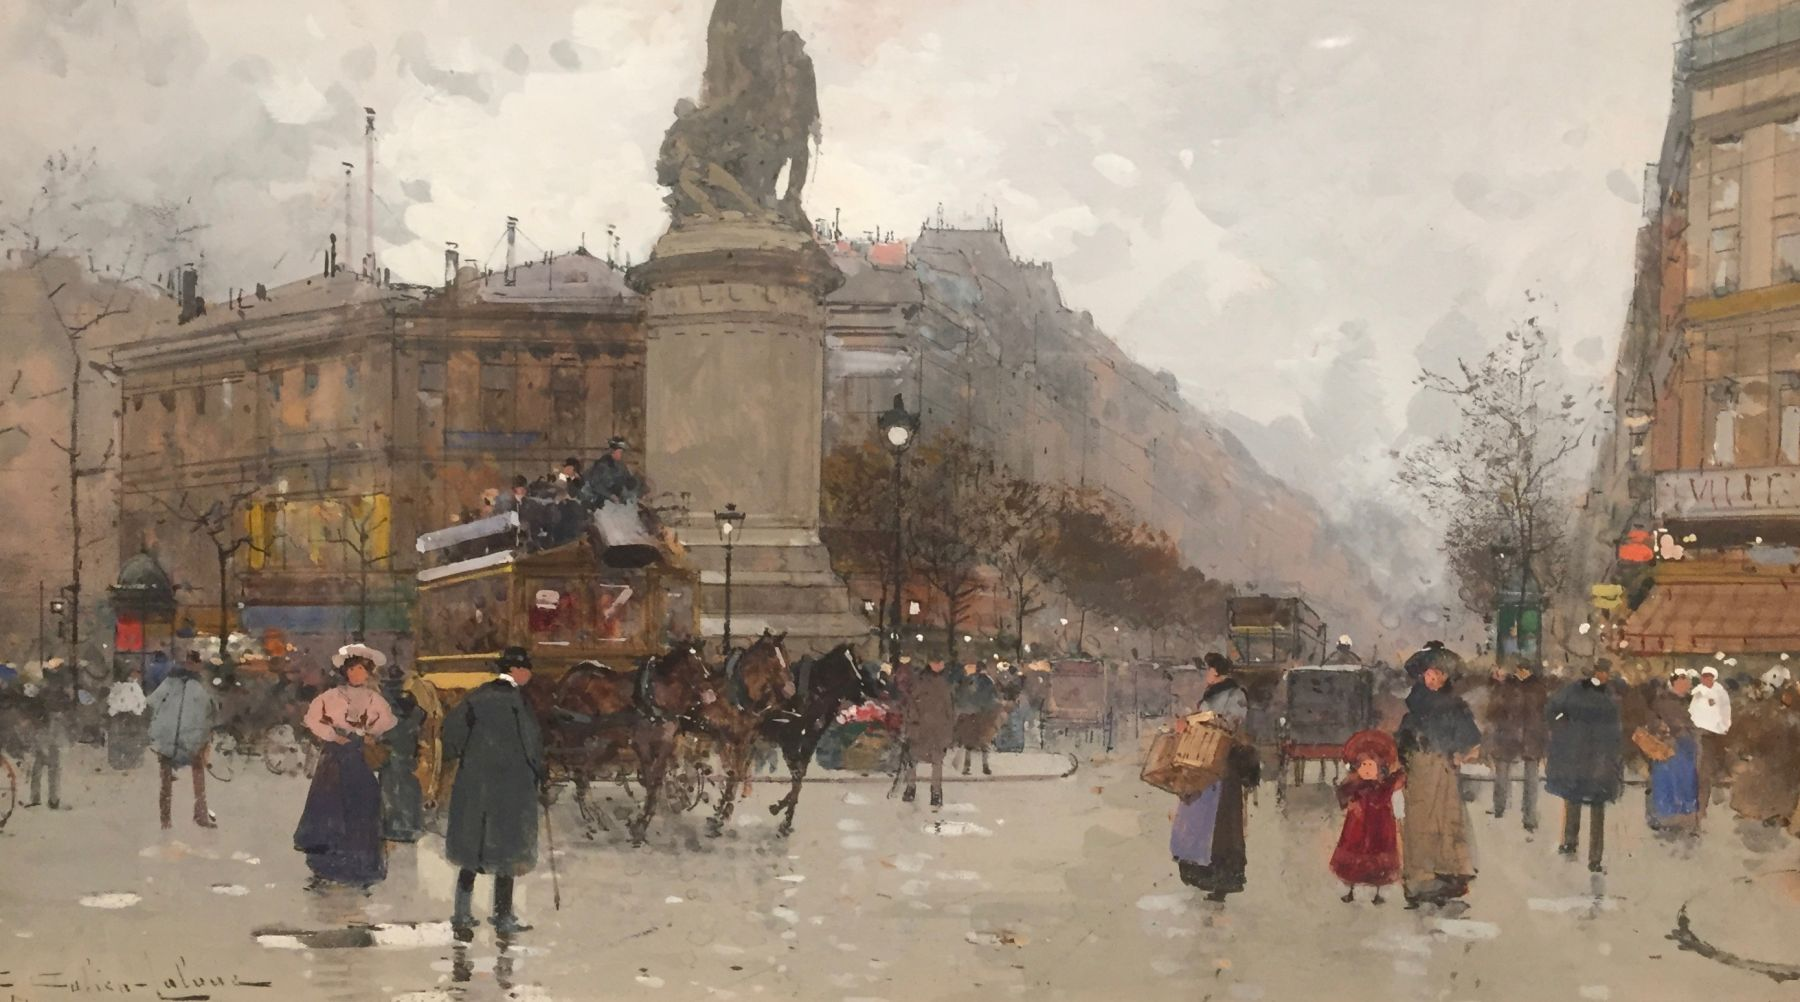 EUGENE GALIEN-LALOUE (1854-1941) Place Moncey Gouache on paper, 7 x 11.75 inches